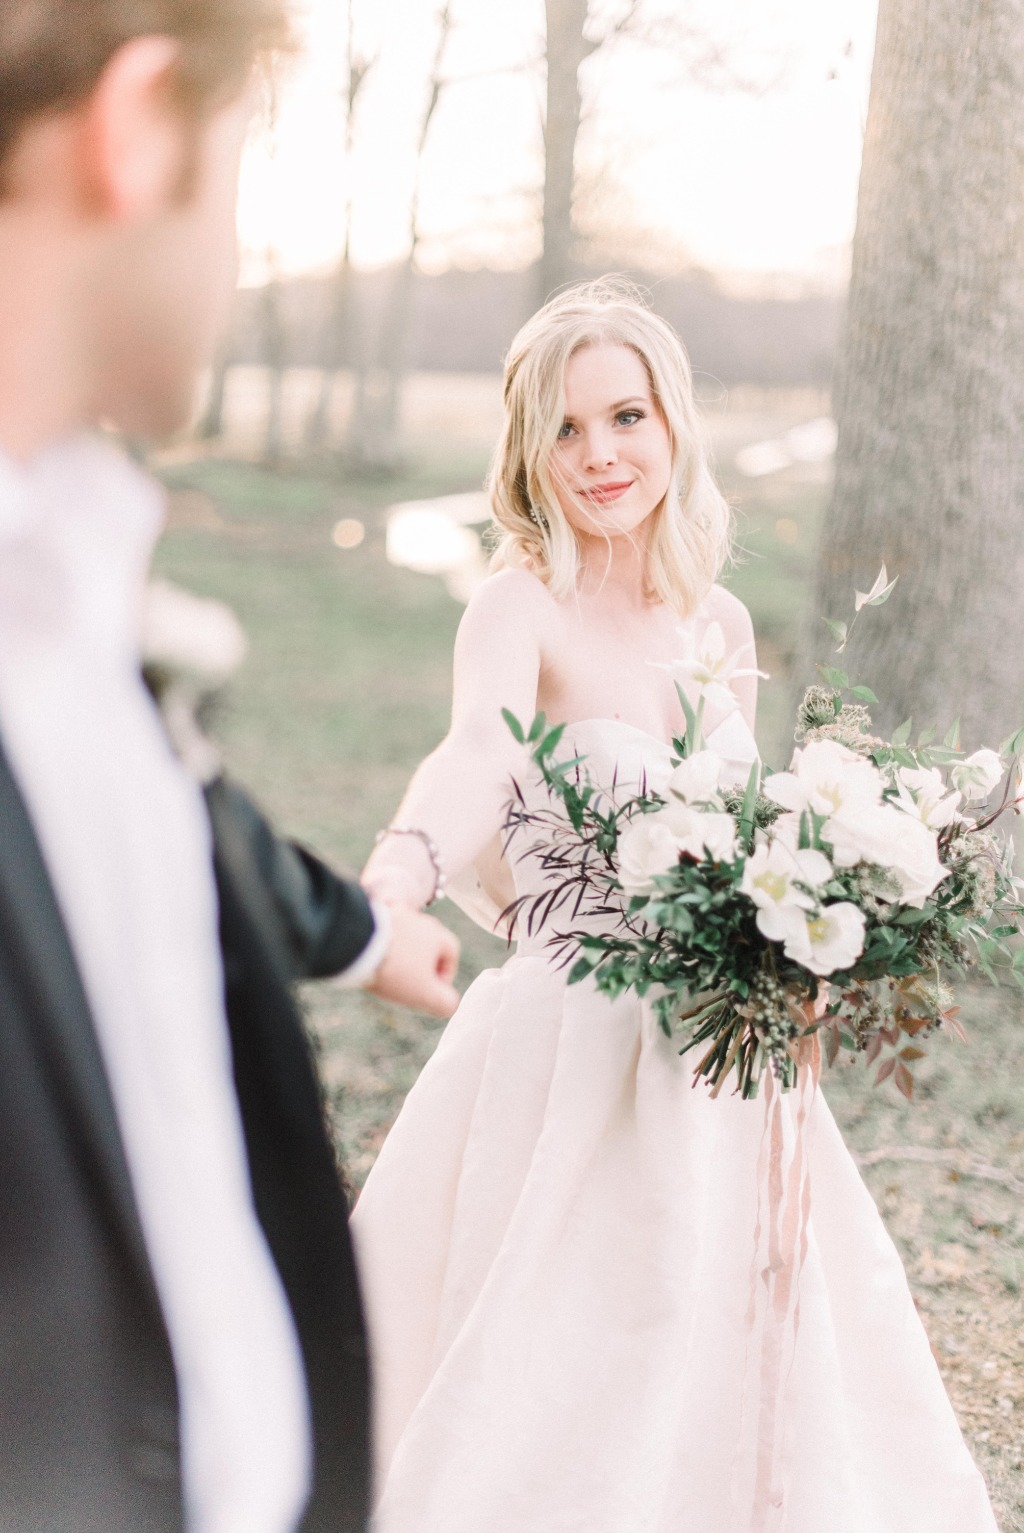 Dreamy + Fresh Winter Wedding Shoot at Harvest Hollow Farm | bride's finery: Lea-Ann Belter Bridal Lucille gown and Toni Federici